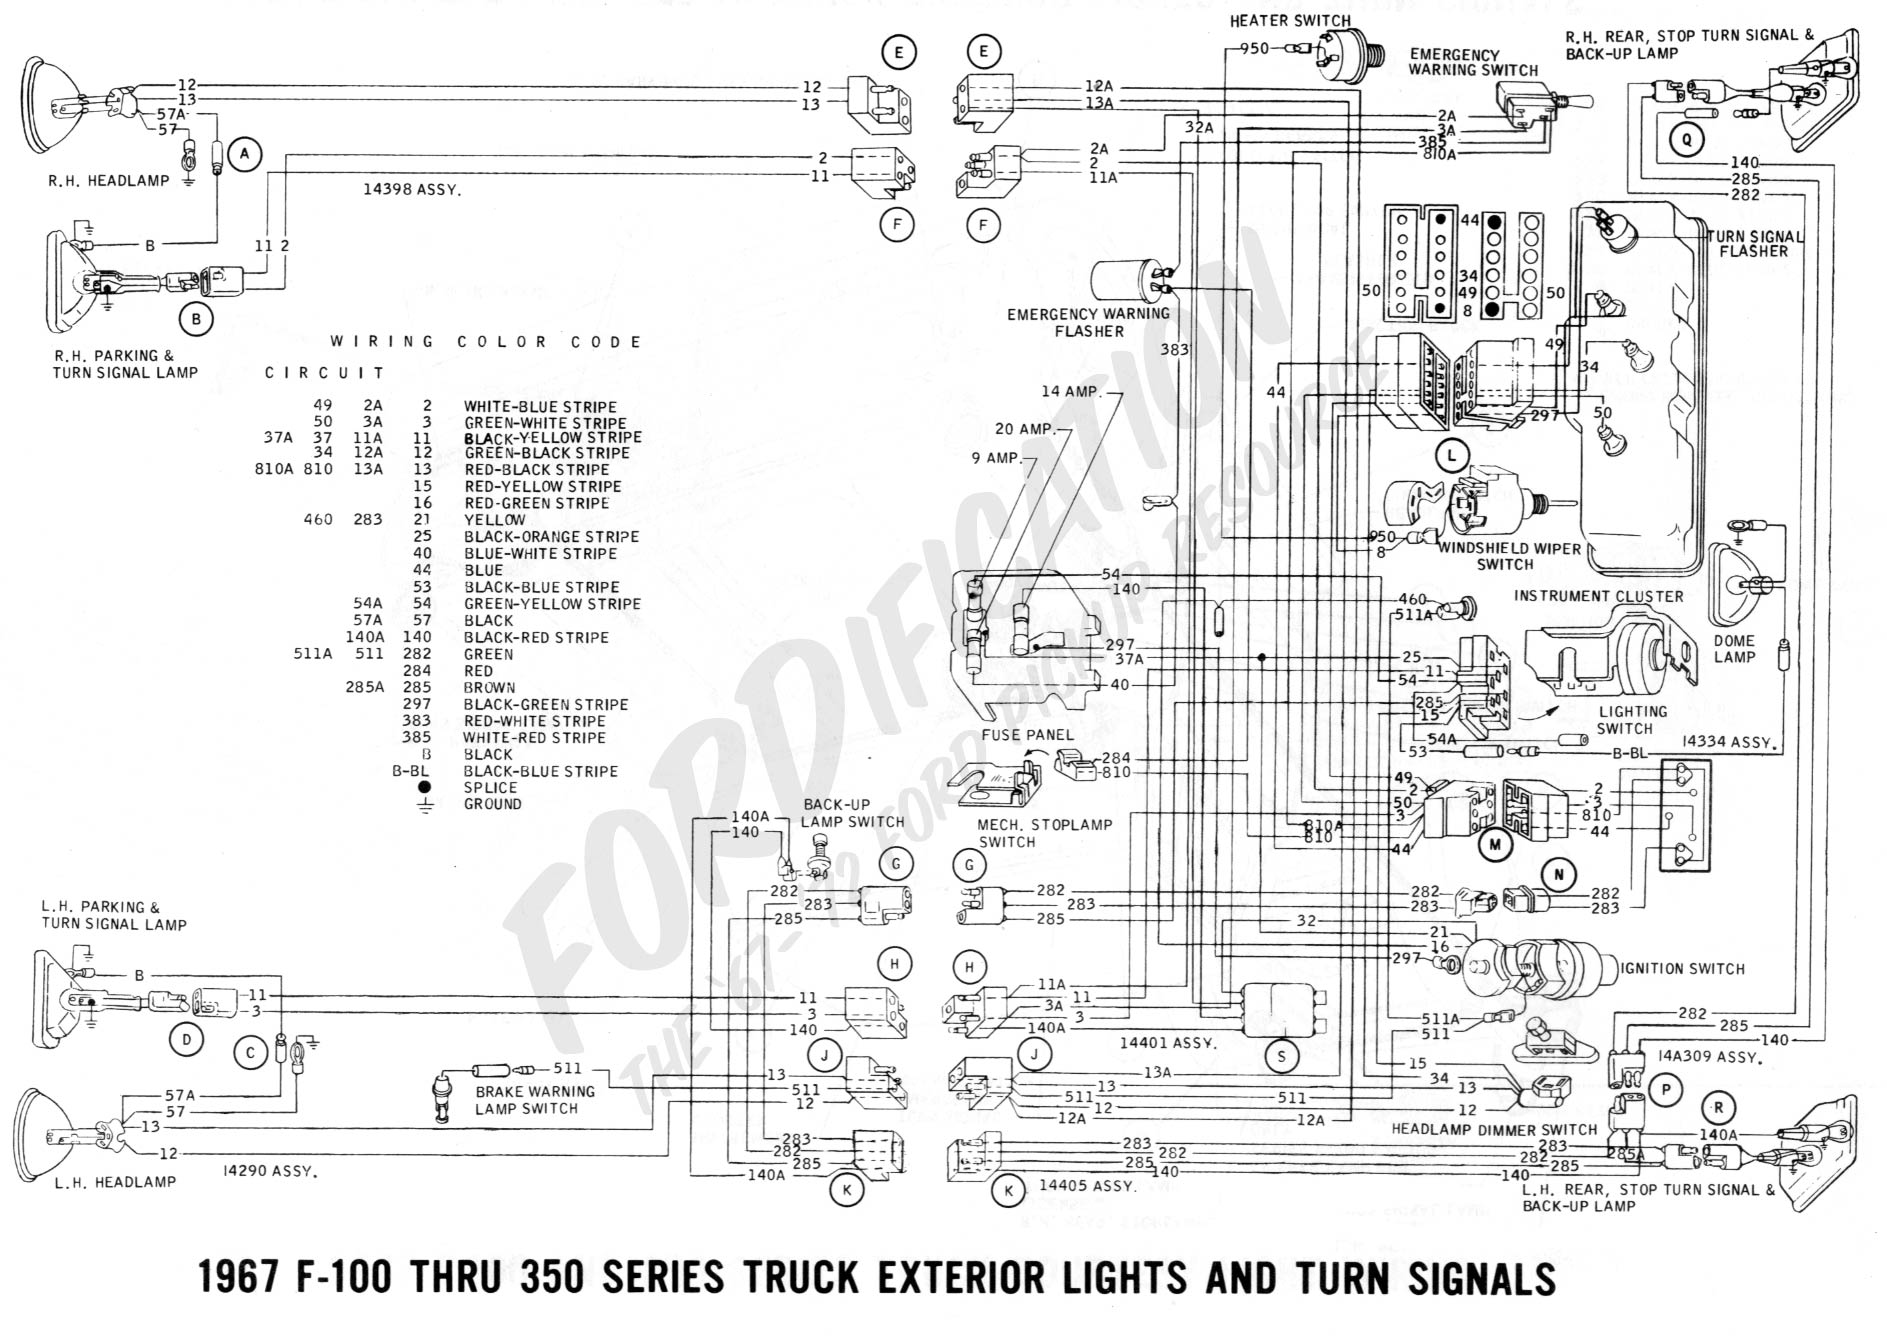 E350 Ford 1997 Fuse Box Diagram Wiring Library Truck Technical Drawings And Schematics Section H Under Dash 2002